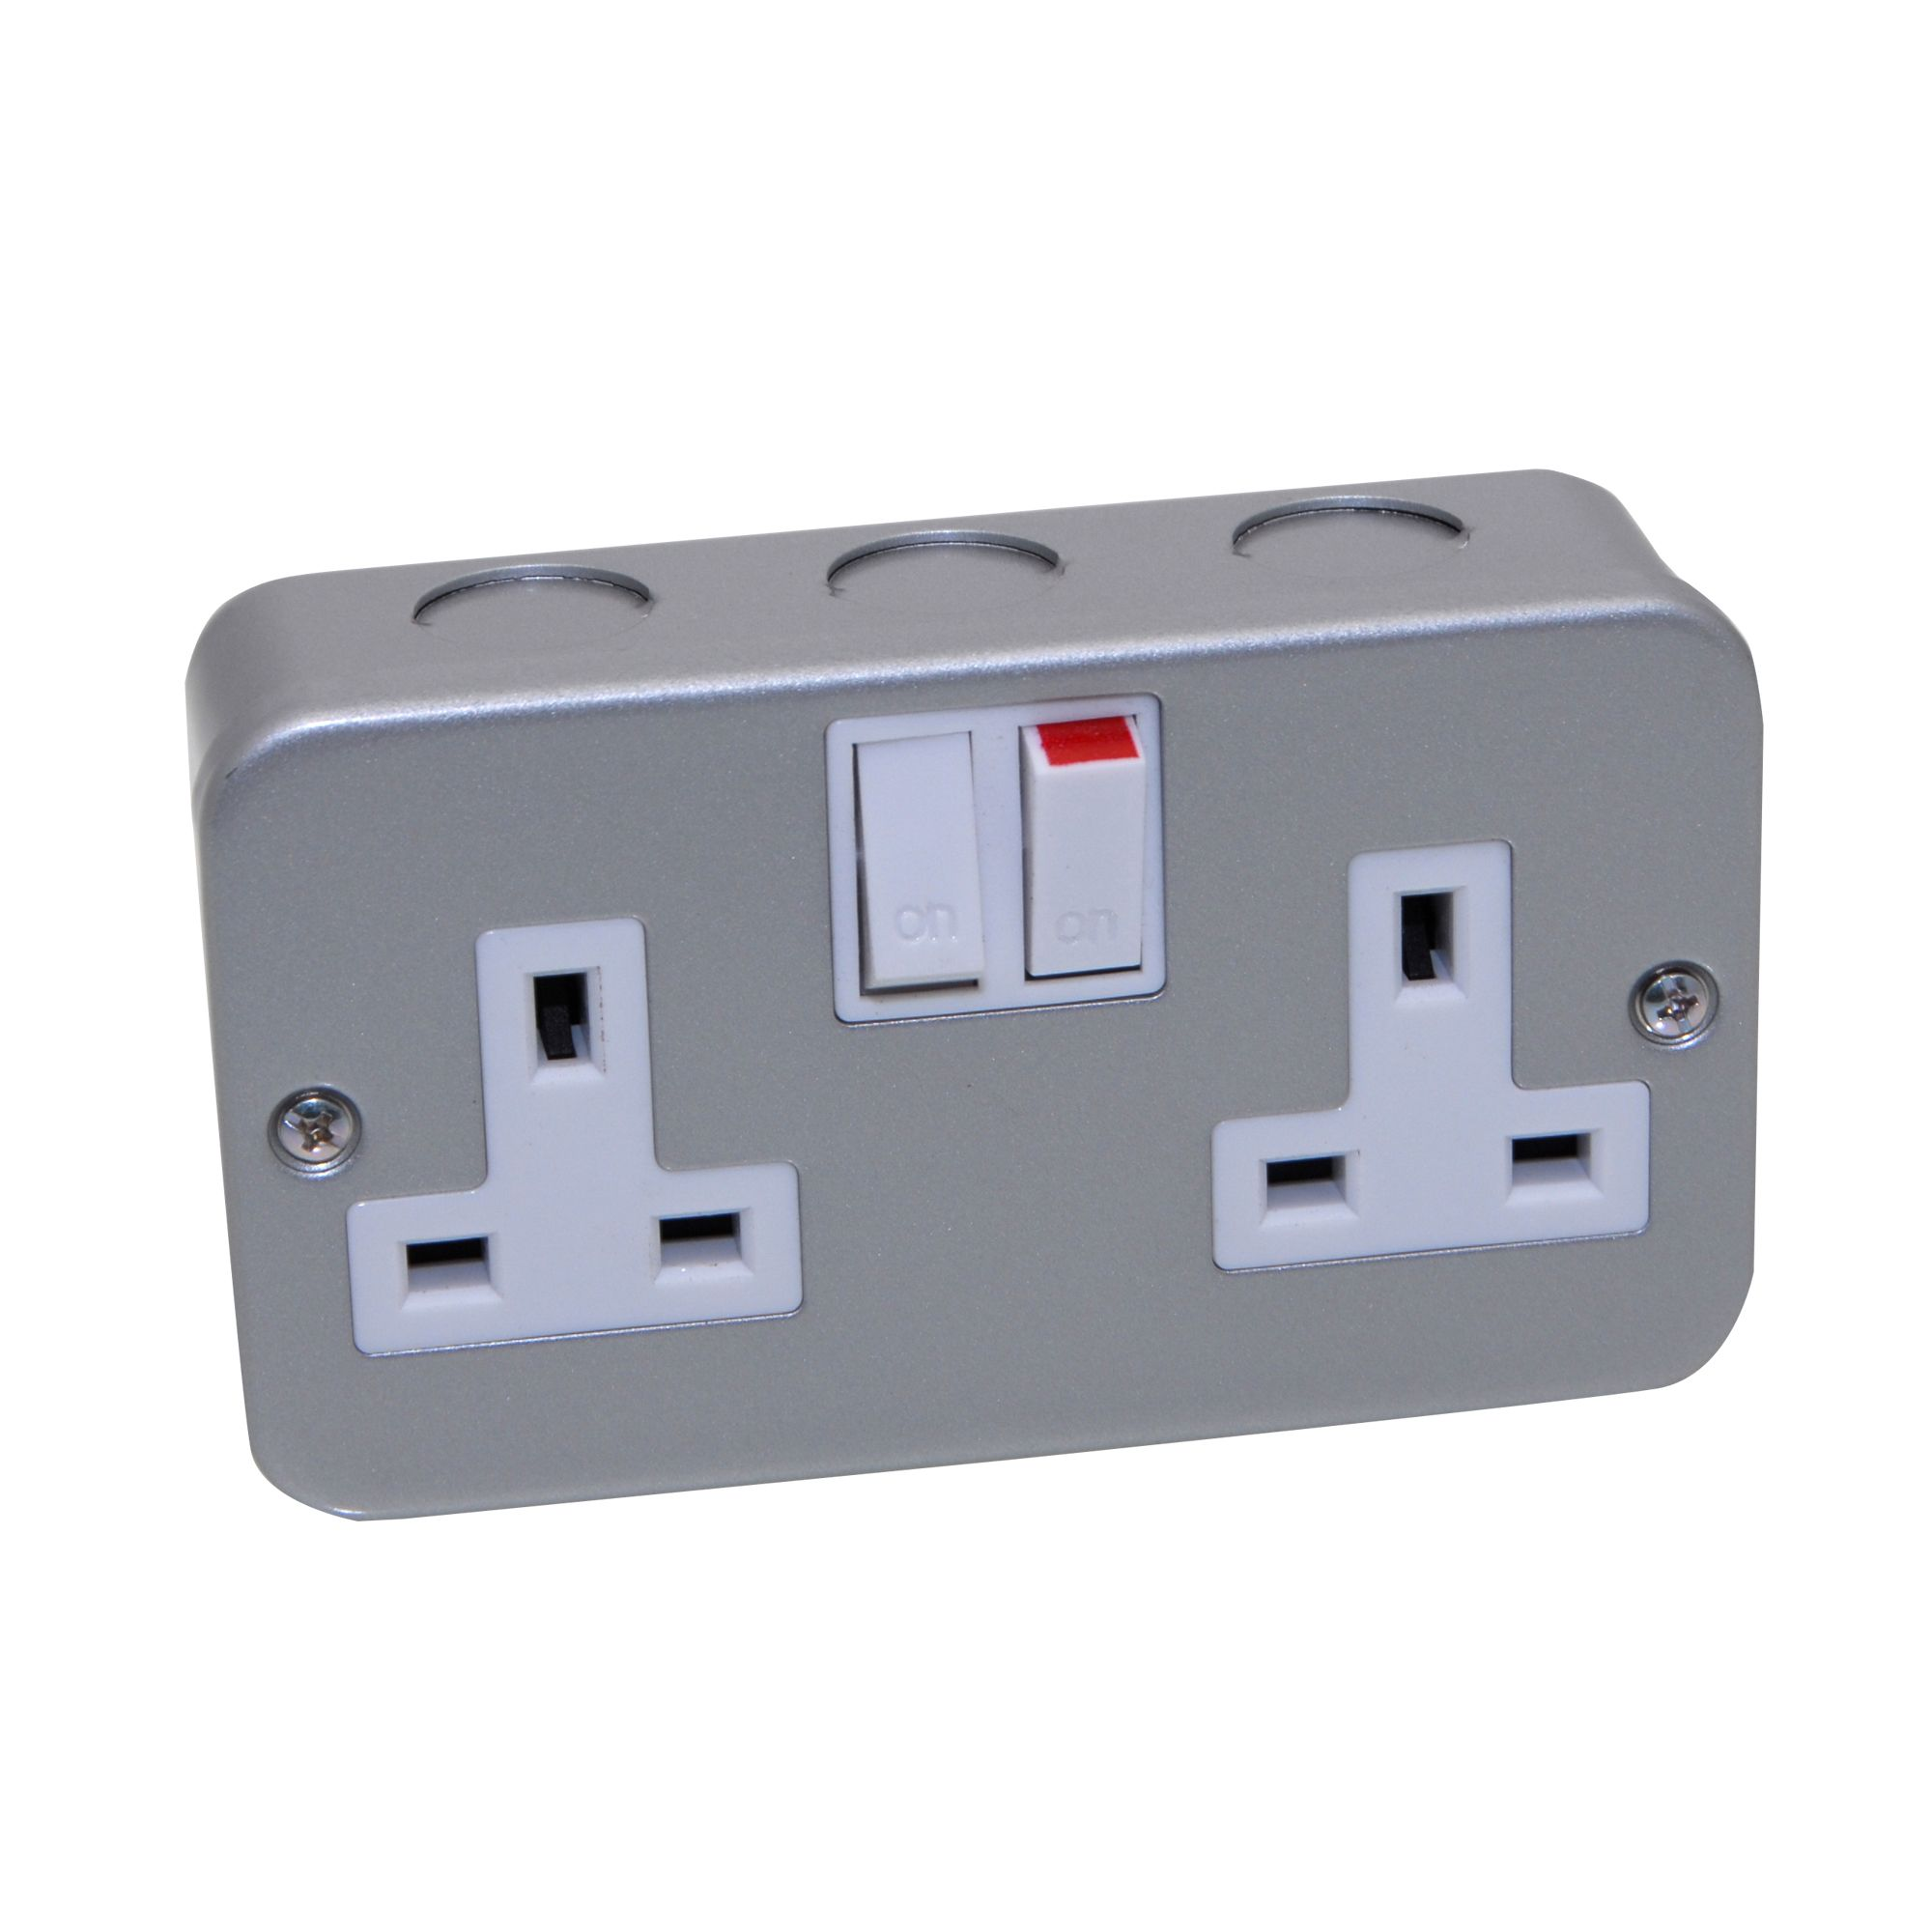 Pro Power 13a Metal Clad Switched Double Socket